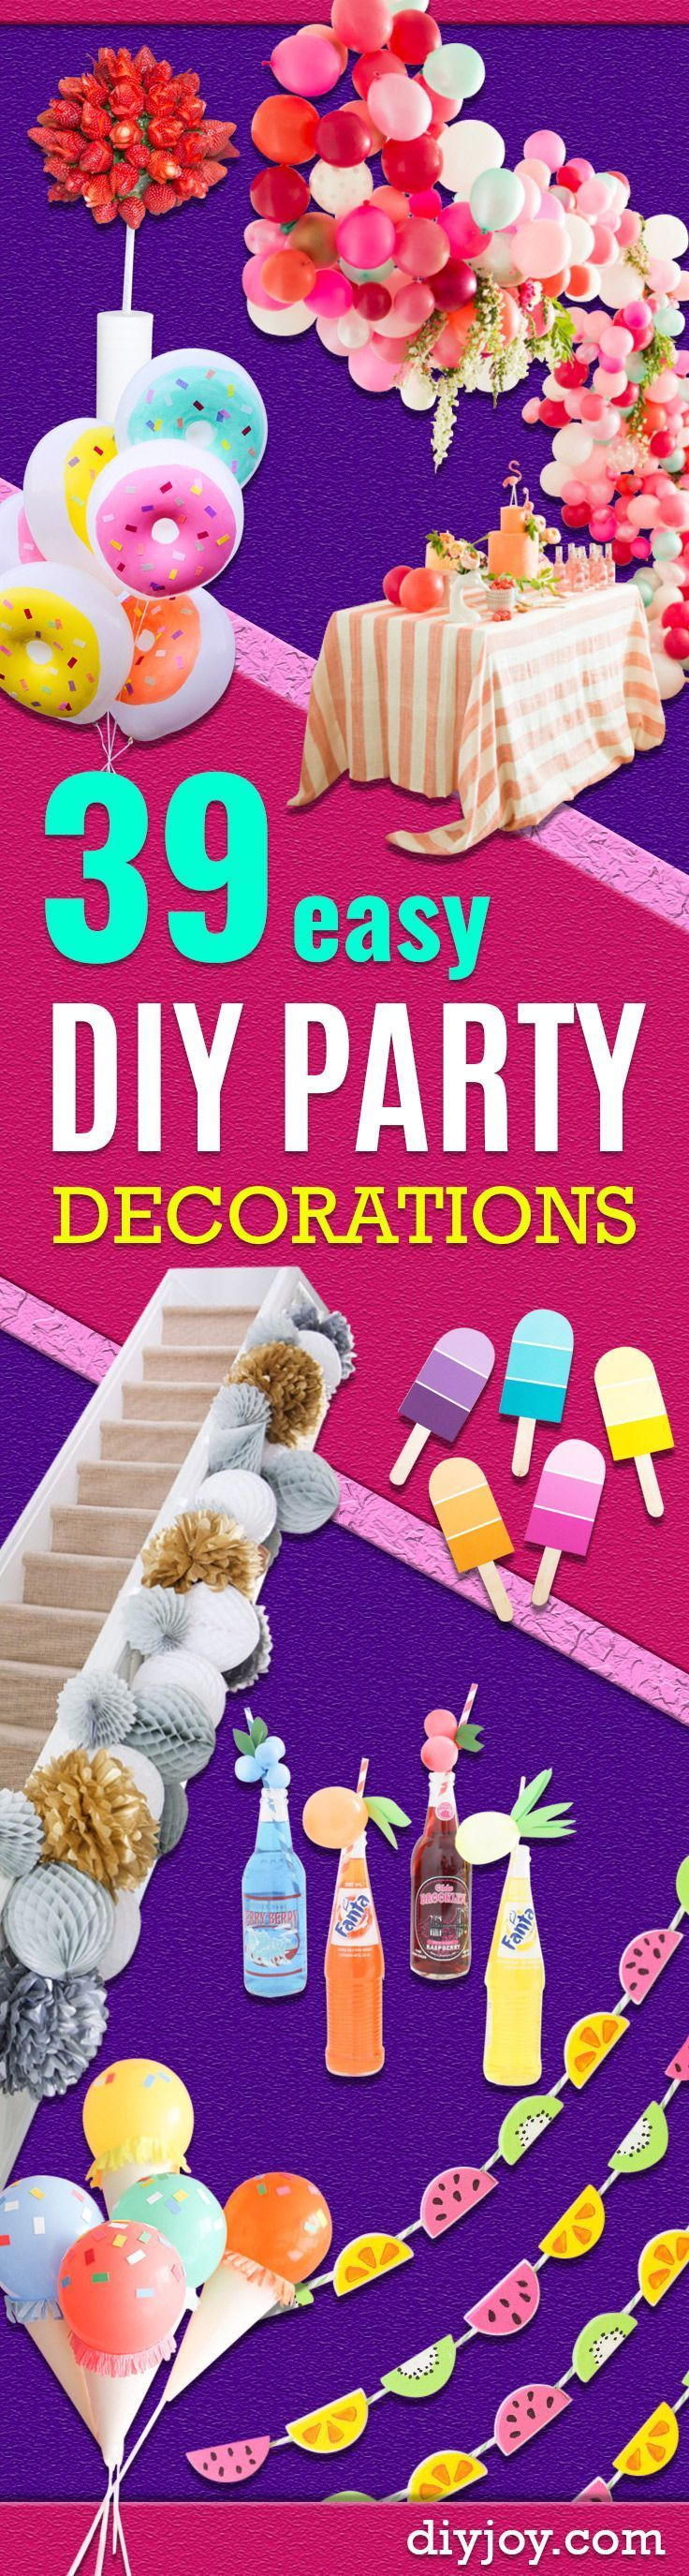 Best 25+ Cheap party decorations ideas on Pinterest | Cheap party ...